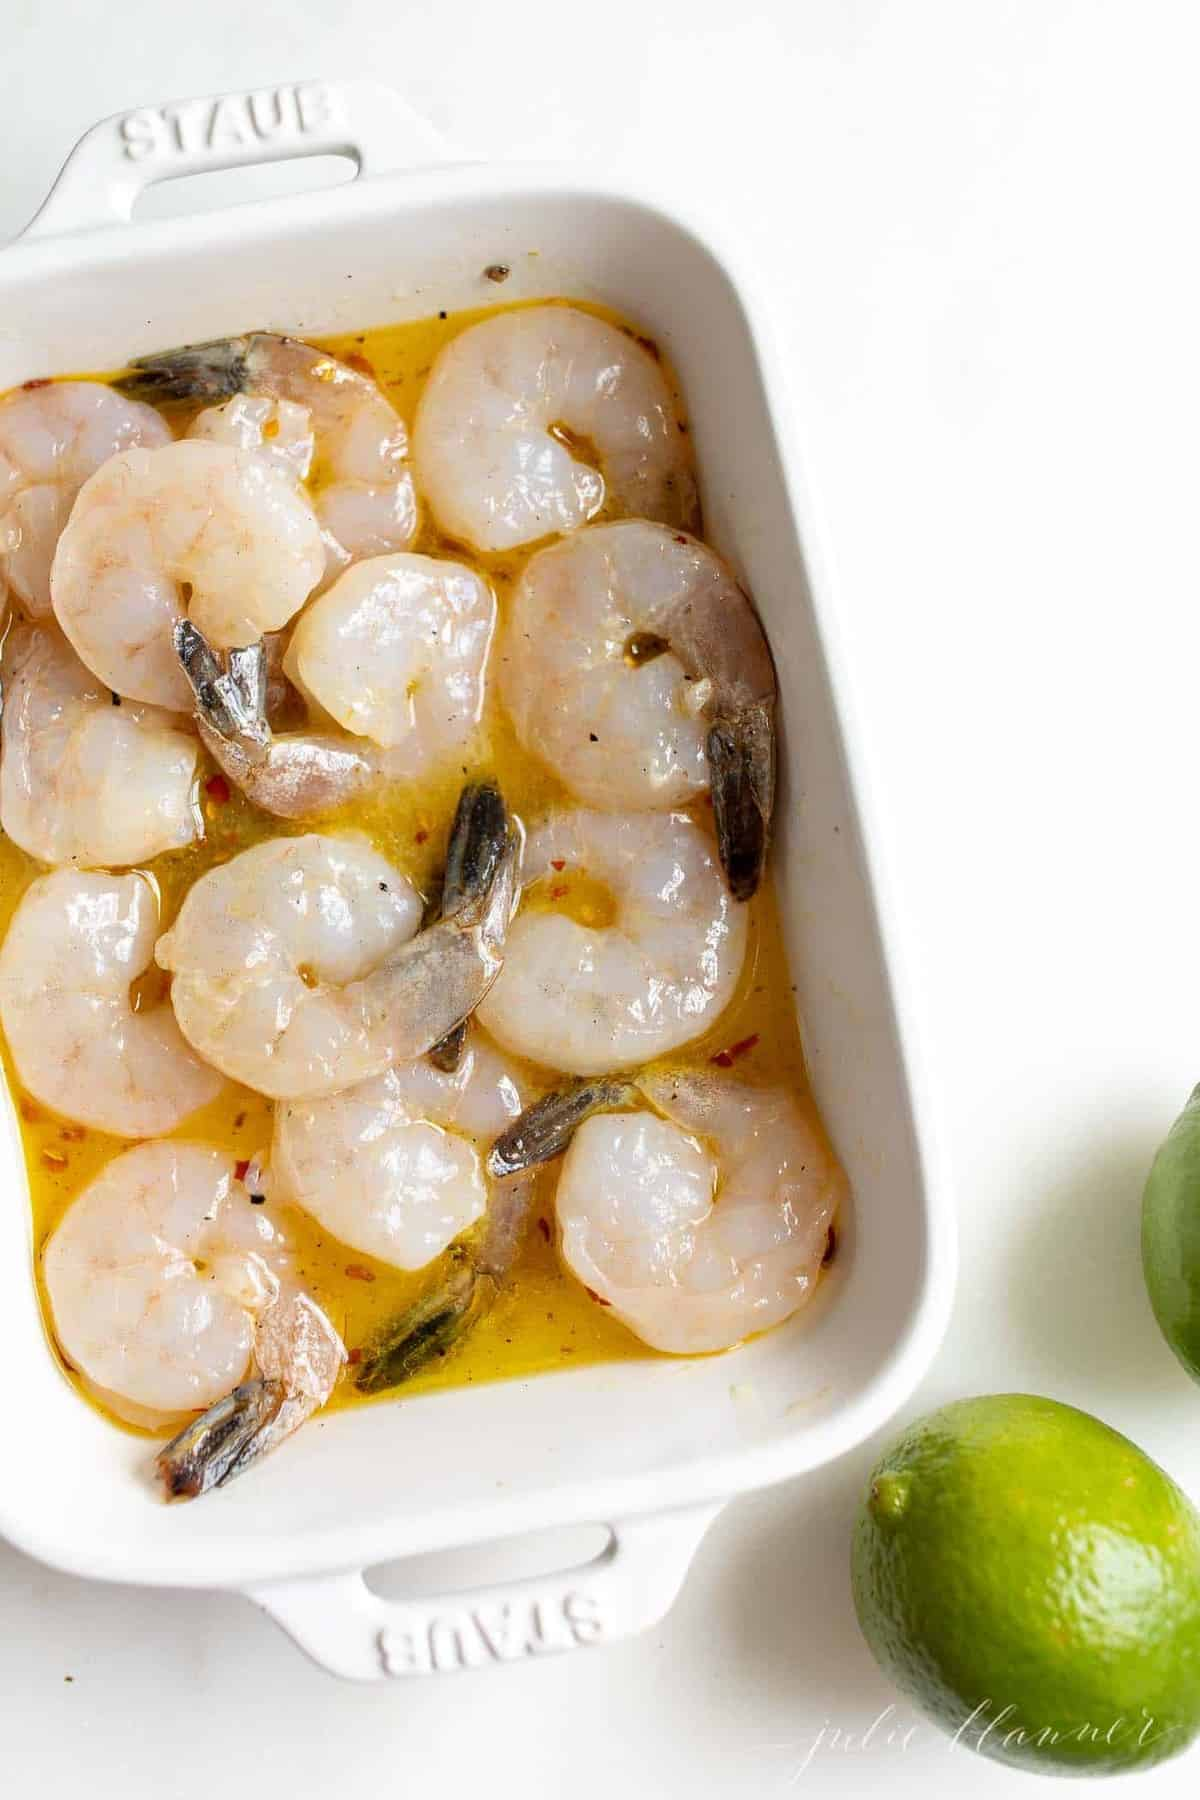 Pineapple shrimp marinade with large shrimp in a white dish.